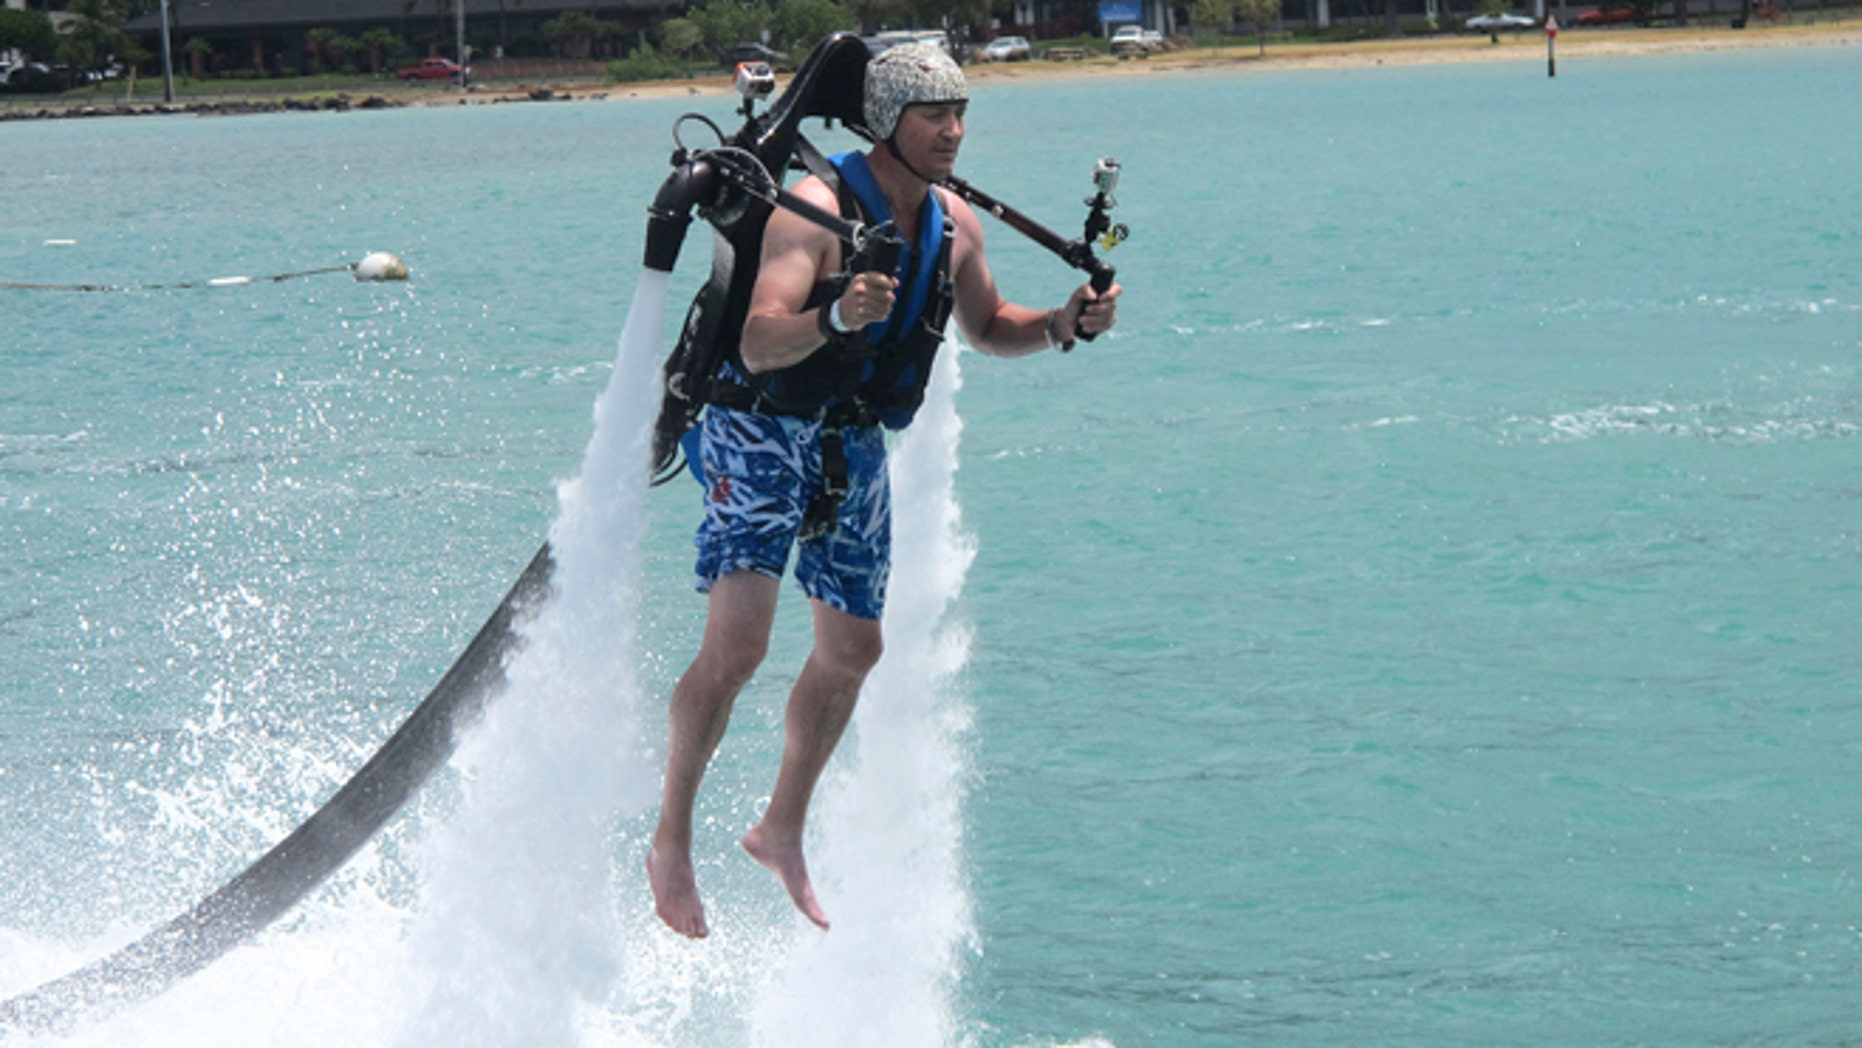 July 19, 2013: In this photo, customer Victor Verlage rides a Jetlev jetpack operated by the company H2O Water Sports Powered by Seabreeze in Honolulu. New devices that pump water fast enough to make people defy gravity are drawing thrill-seekers eager to try the next new watersport, but Hawaii fishermen, scientists and state officials are questioning their safety and how they may affect fish, coral and other fragile natural resources in the islands.